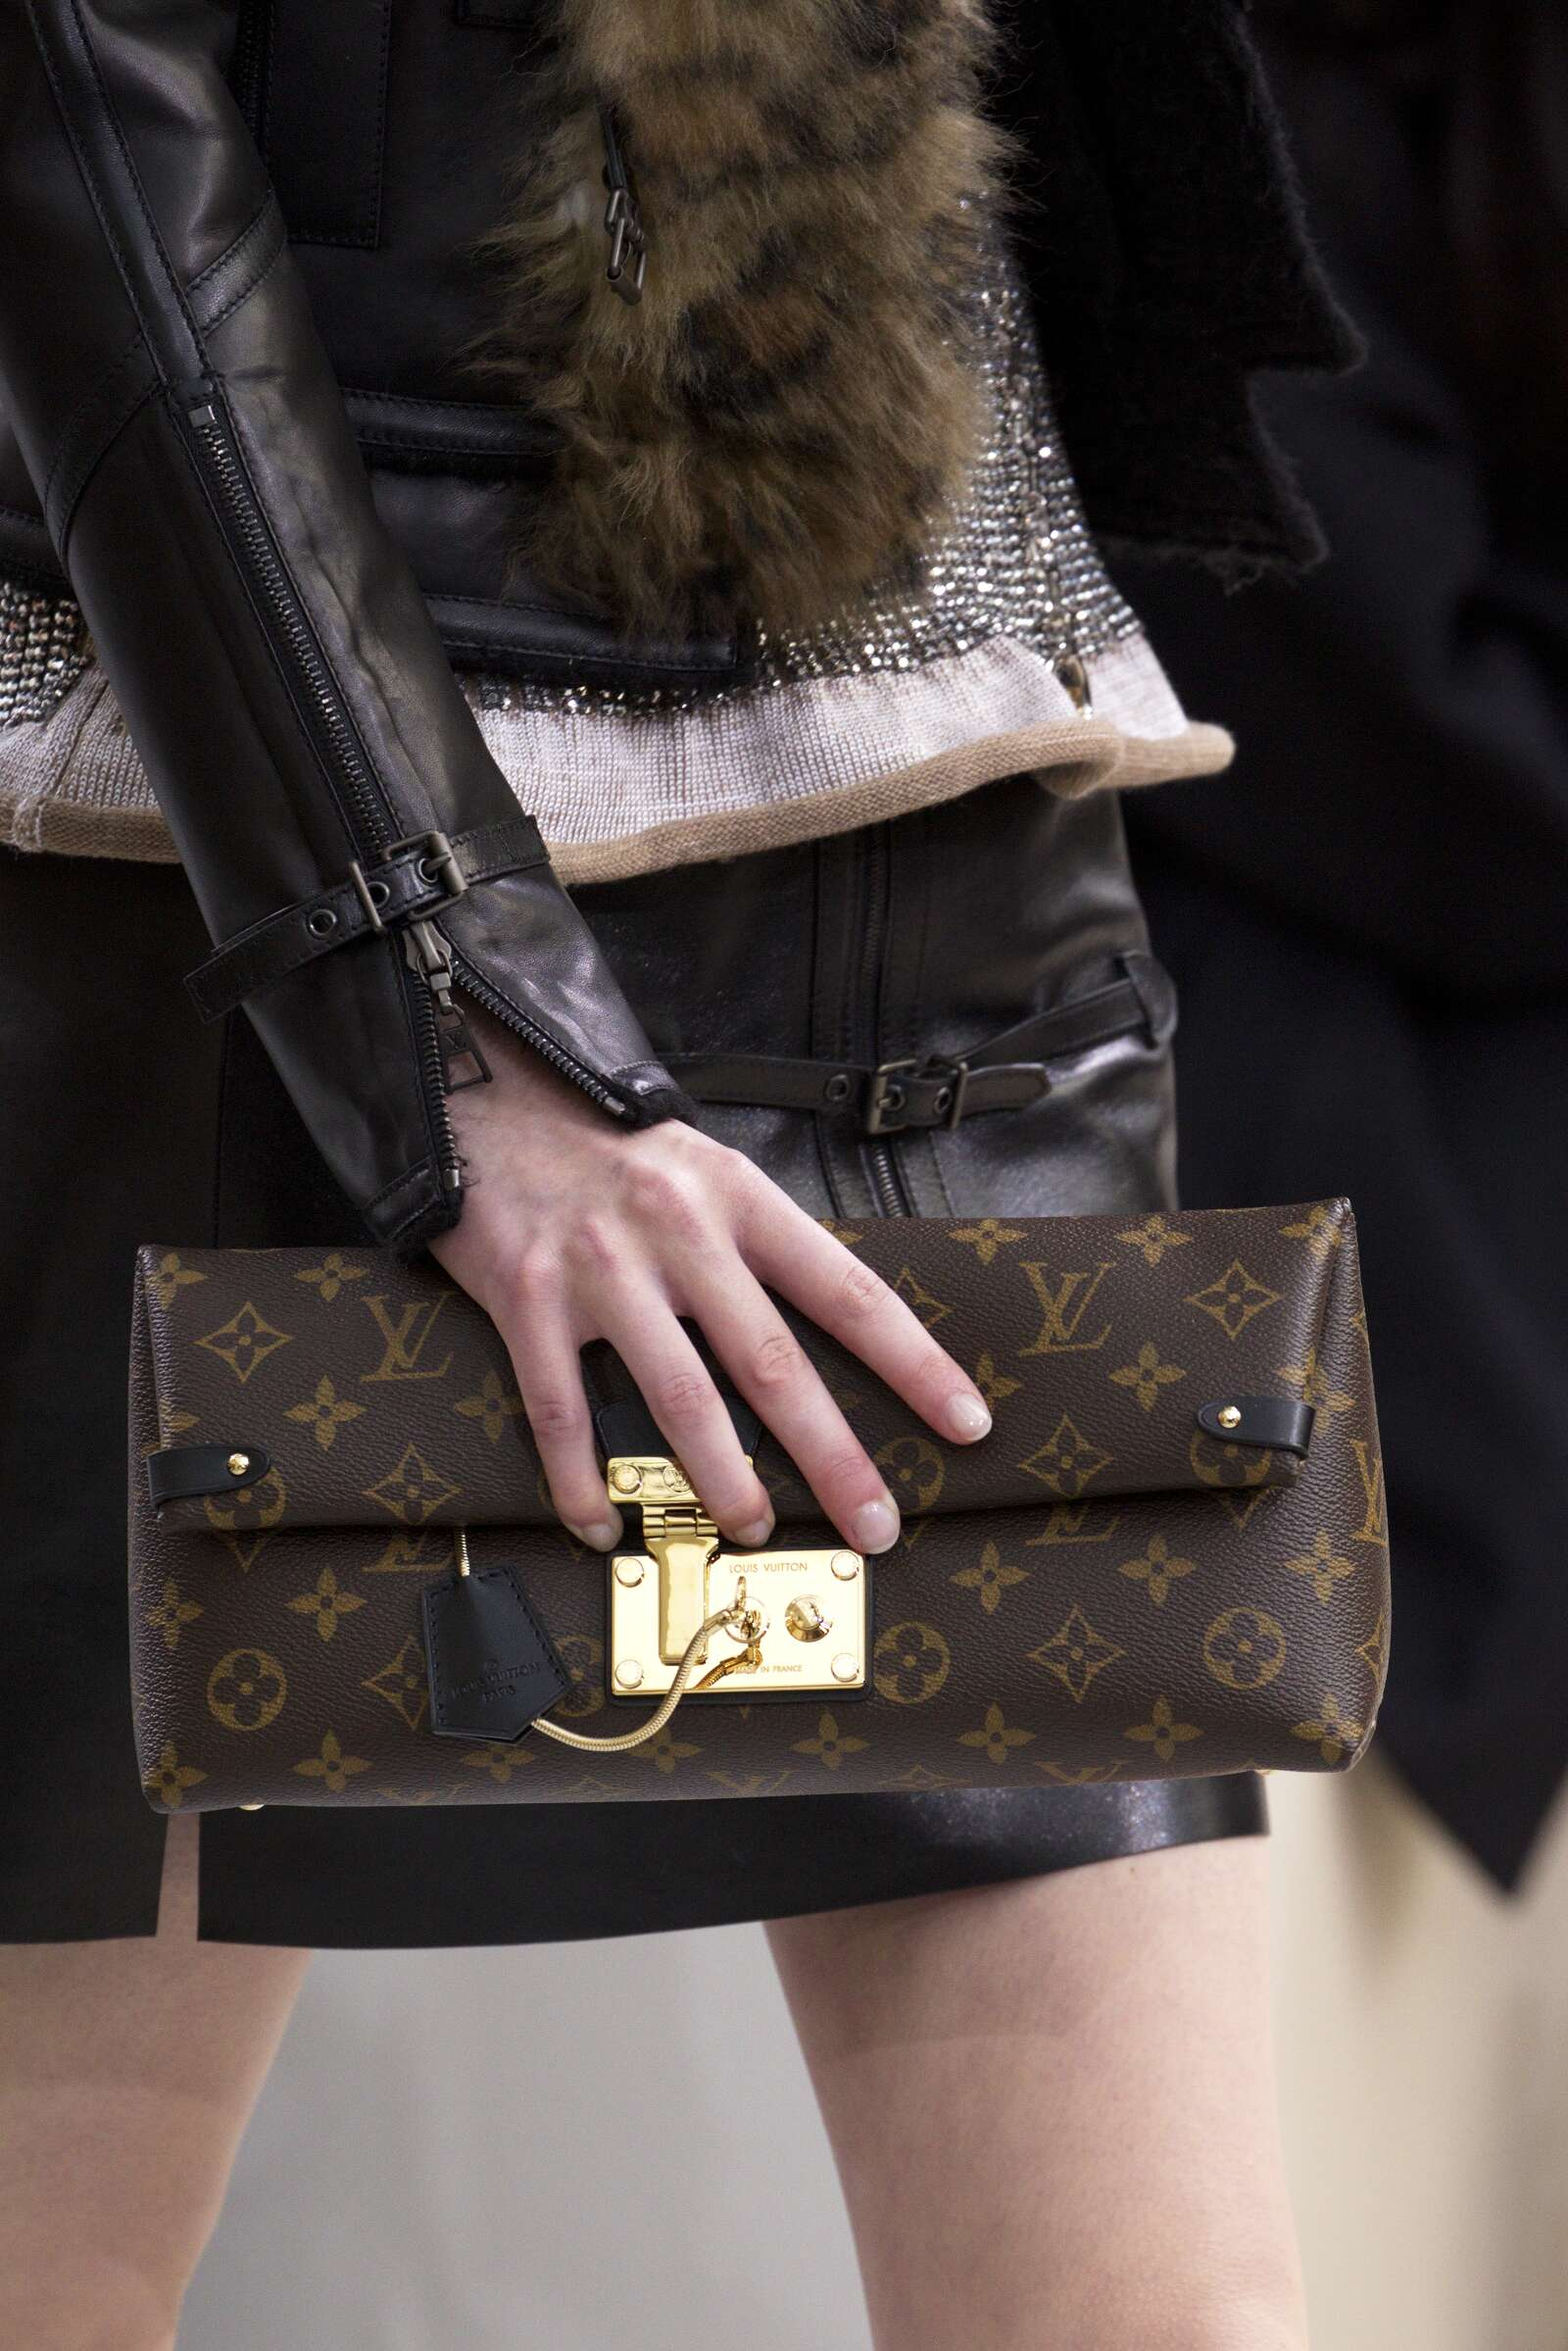 Winter 2015 Runway Louis Vuitton Bag Details